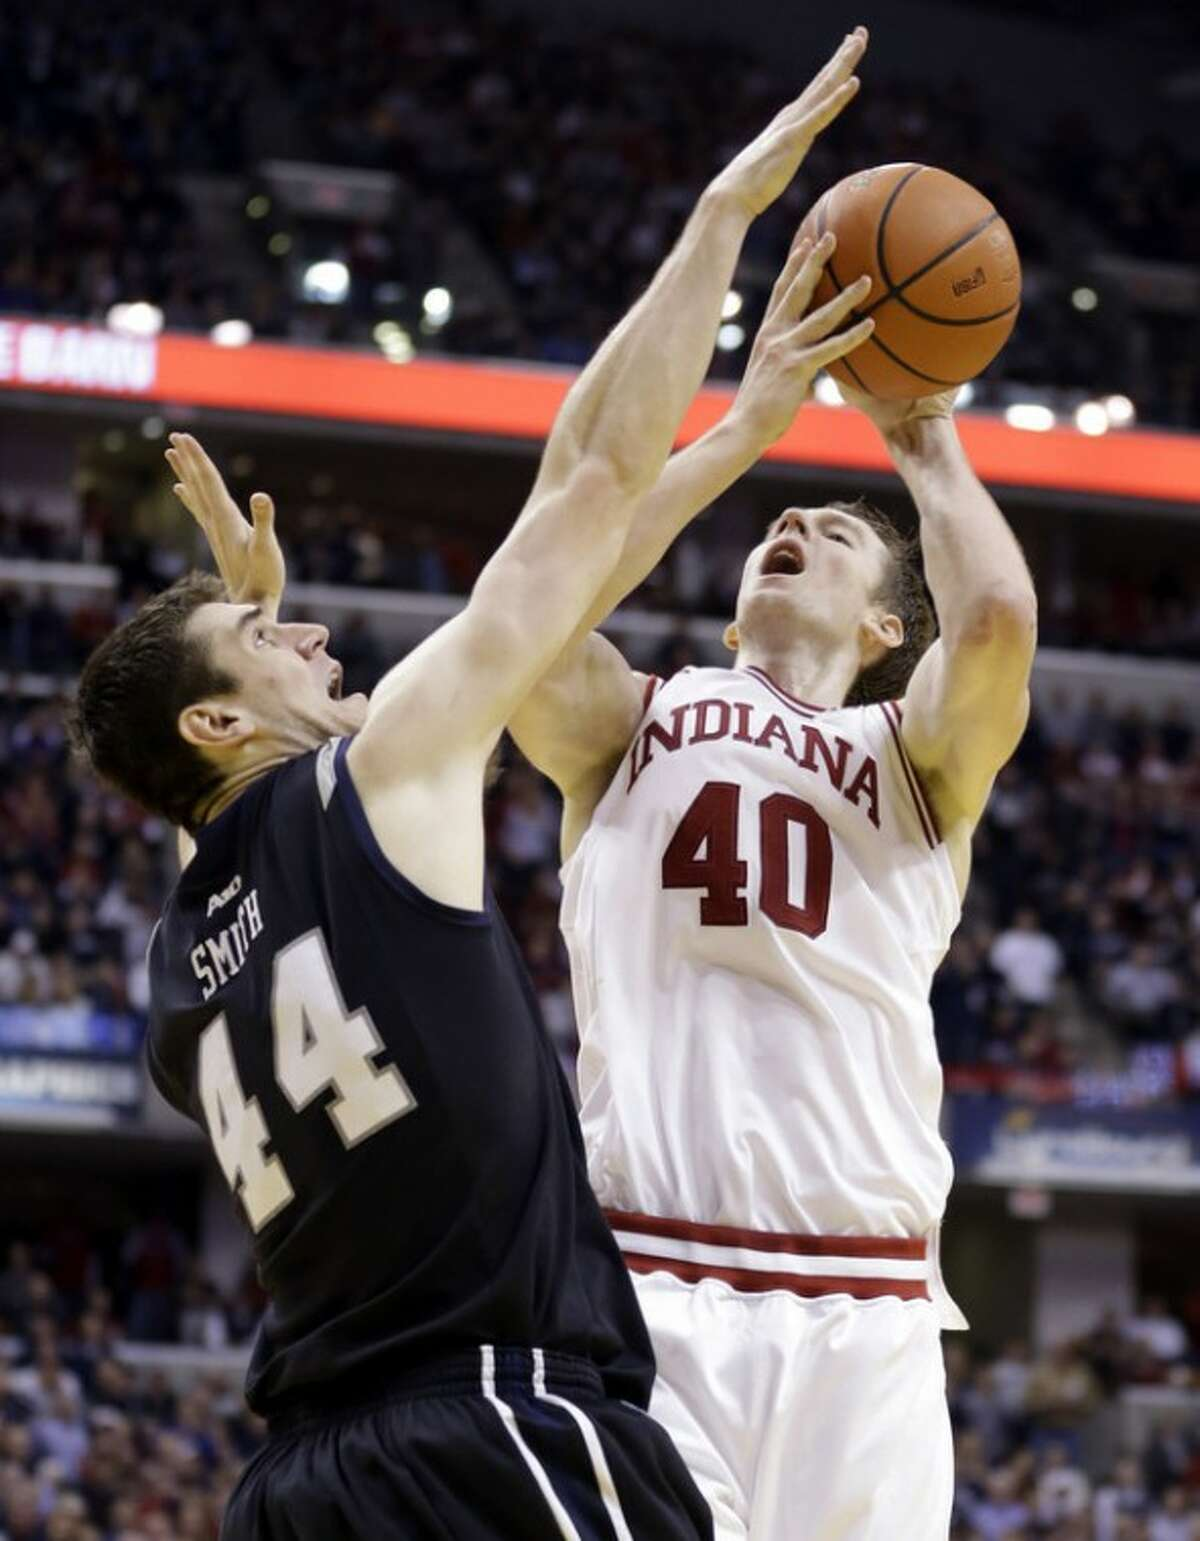 Indiana forward Cody Zeller, right, shoots over Butler center Andrew Smith in the second half of an NCAA college basketball game in Indianapolis, Saturday, Dec. 15, 2012. Butler defeated Indiana 88-86 in overtime. (AP Photo/Michael Conroy)